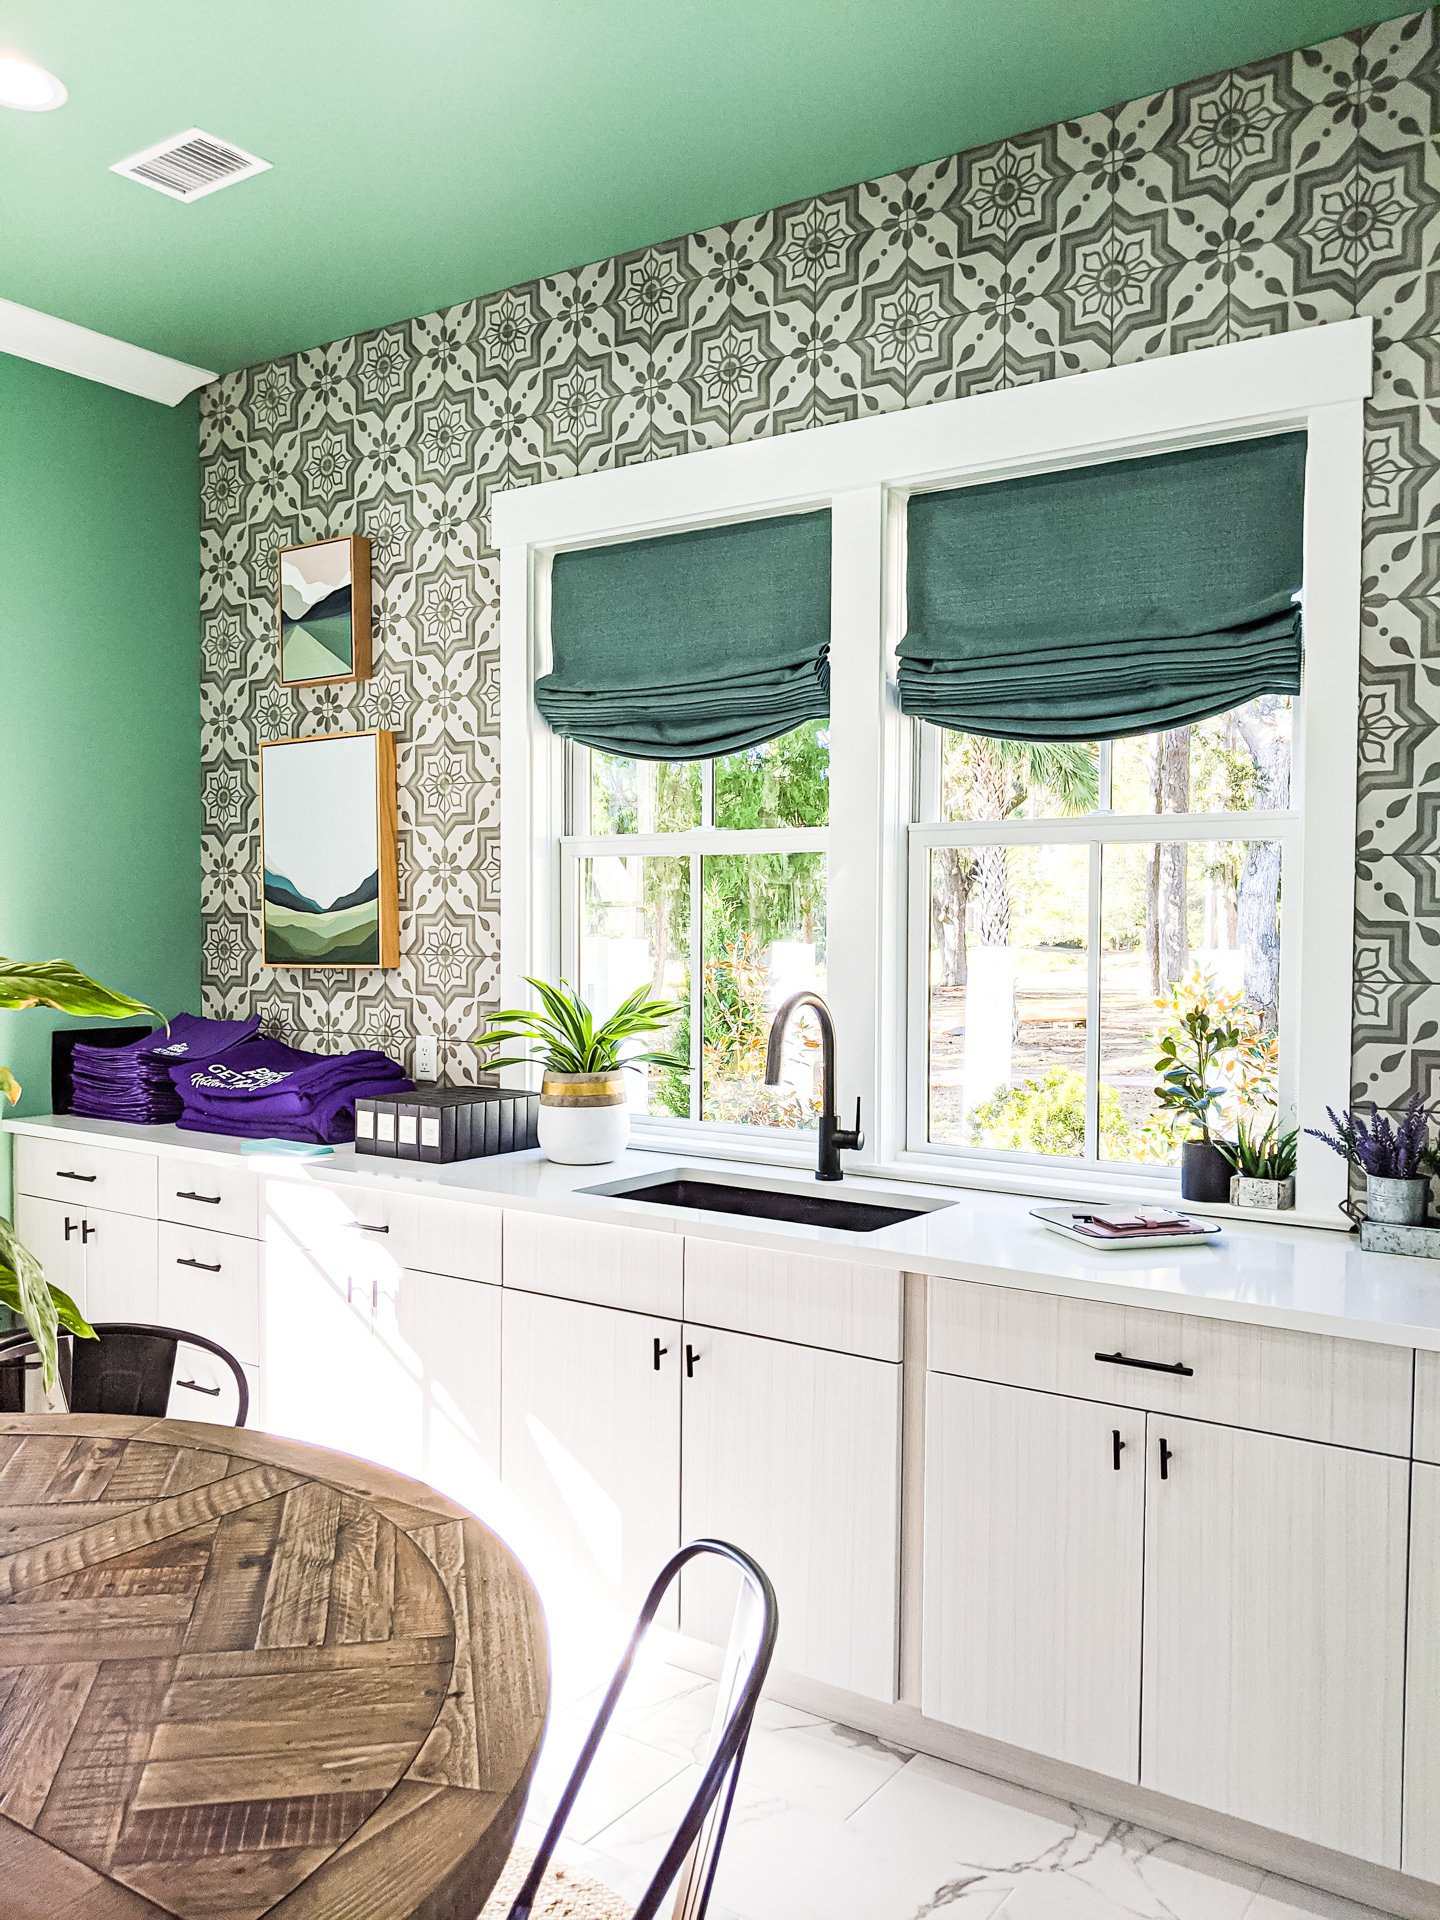 HGTV laundry room mudroom teal walls cement pattern tile